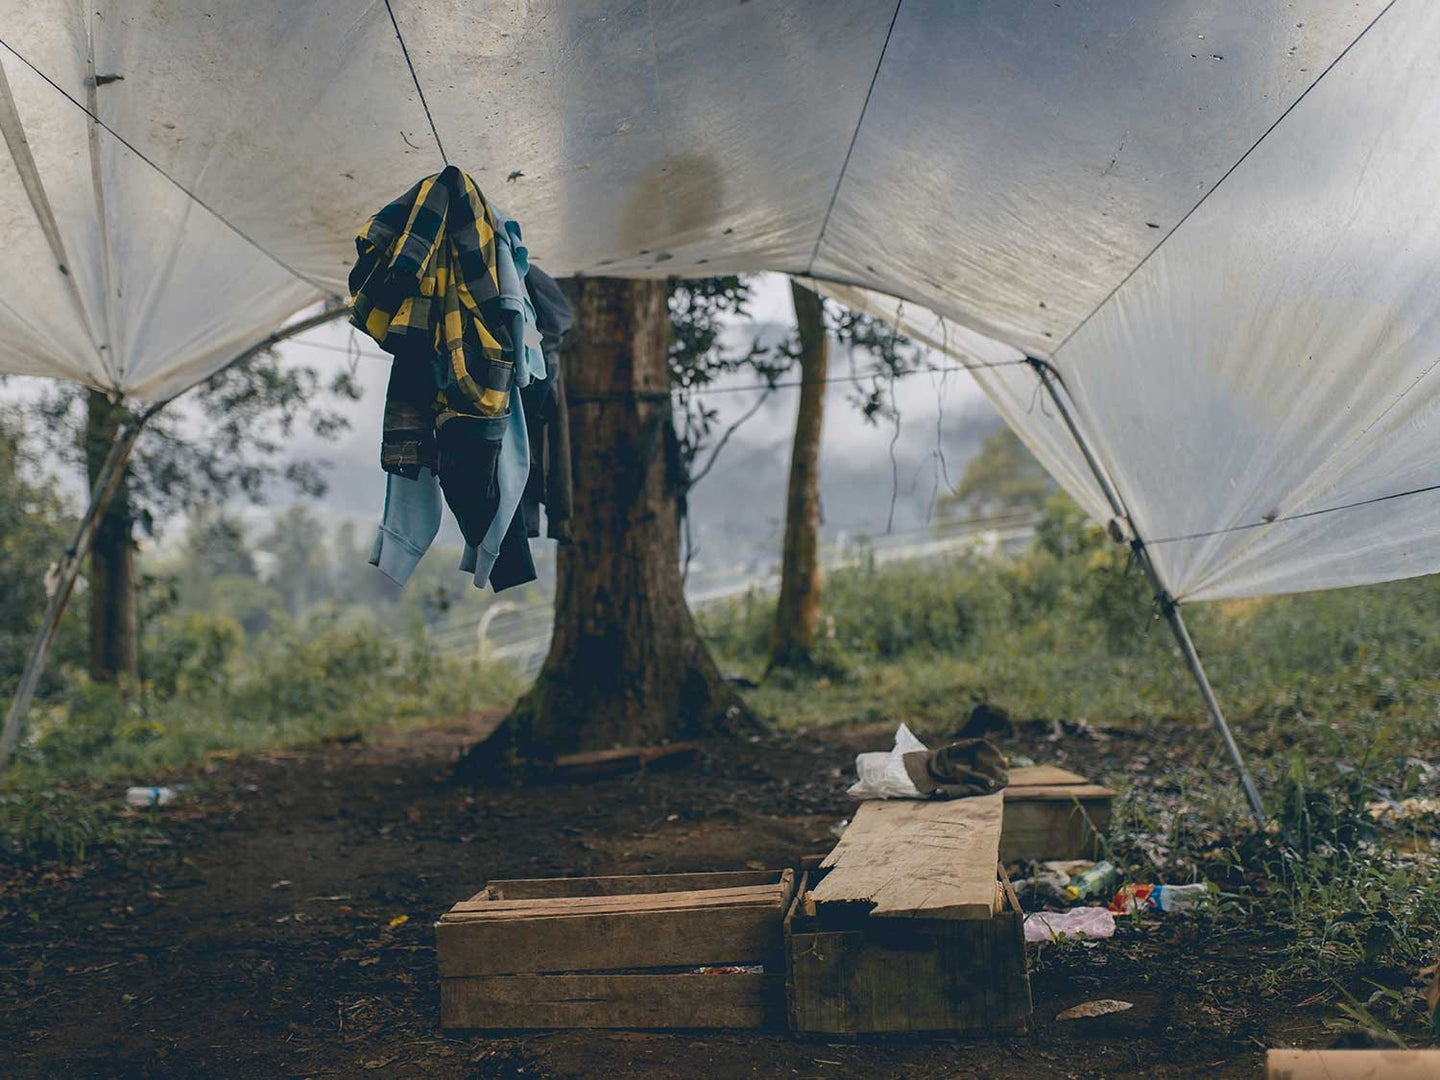 tent rain fly covering items